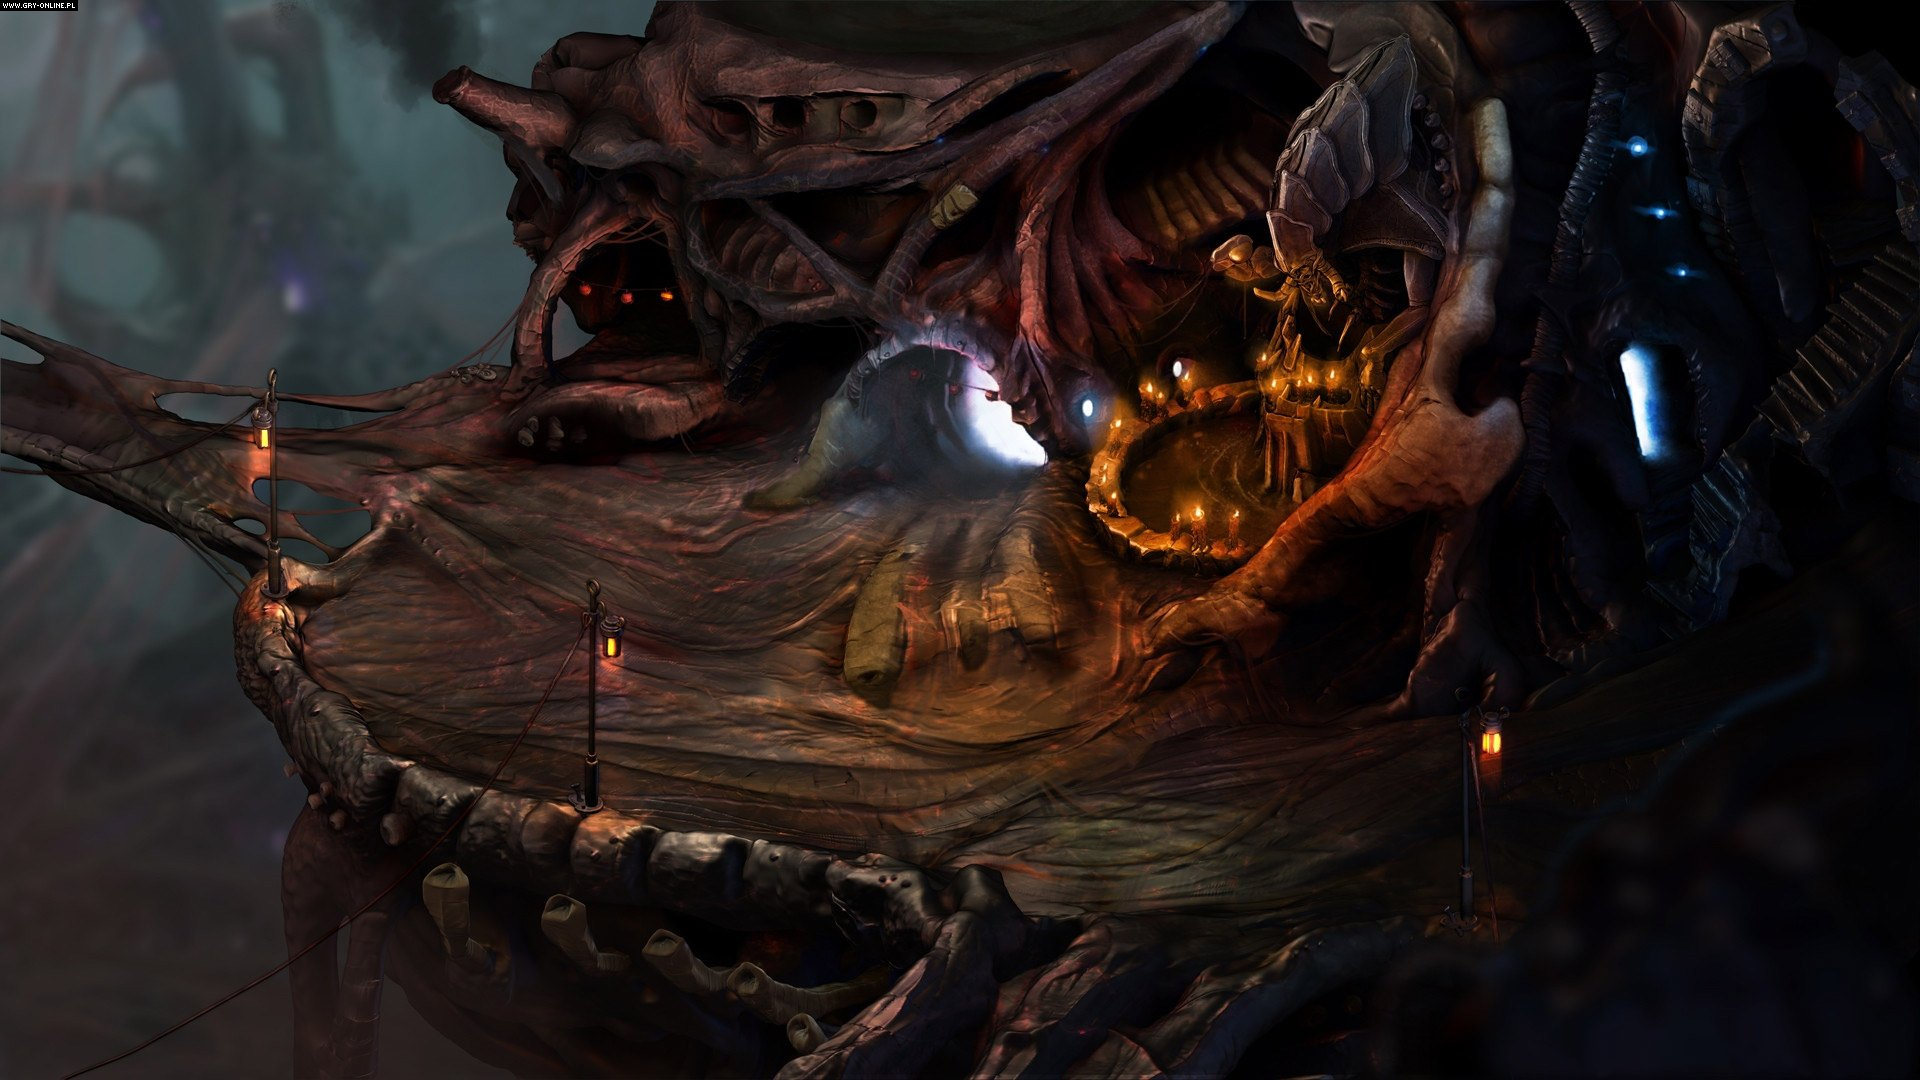 Torment: Tides of Numenera PC Games Image 26/28, inXile entertainment, Techland